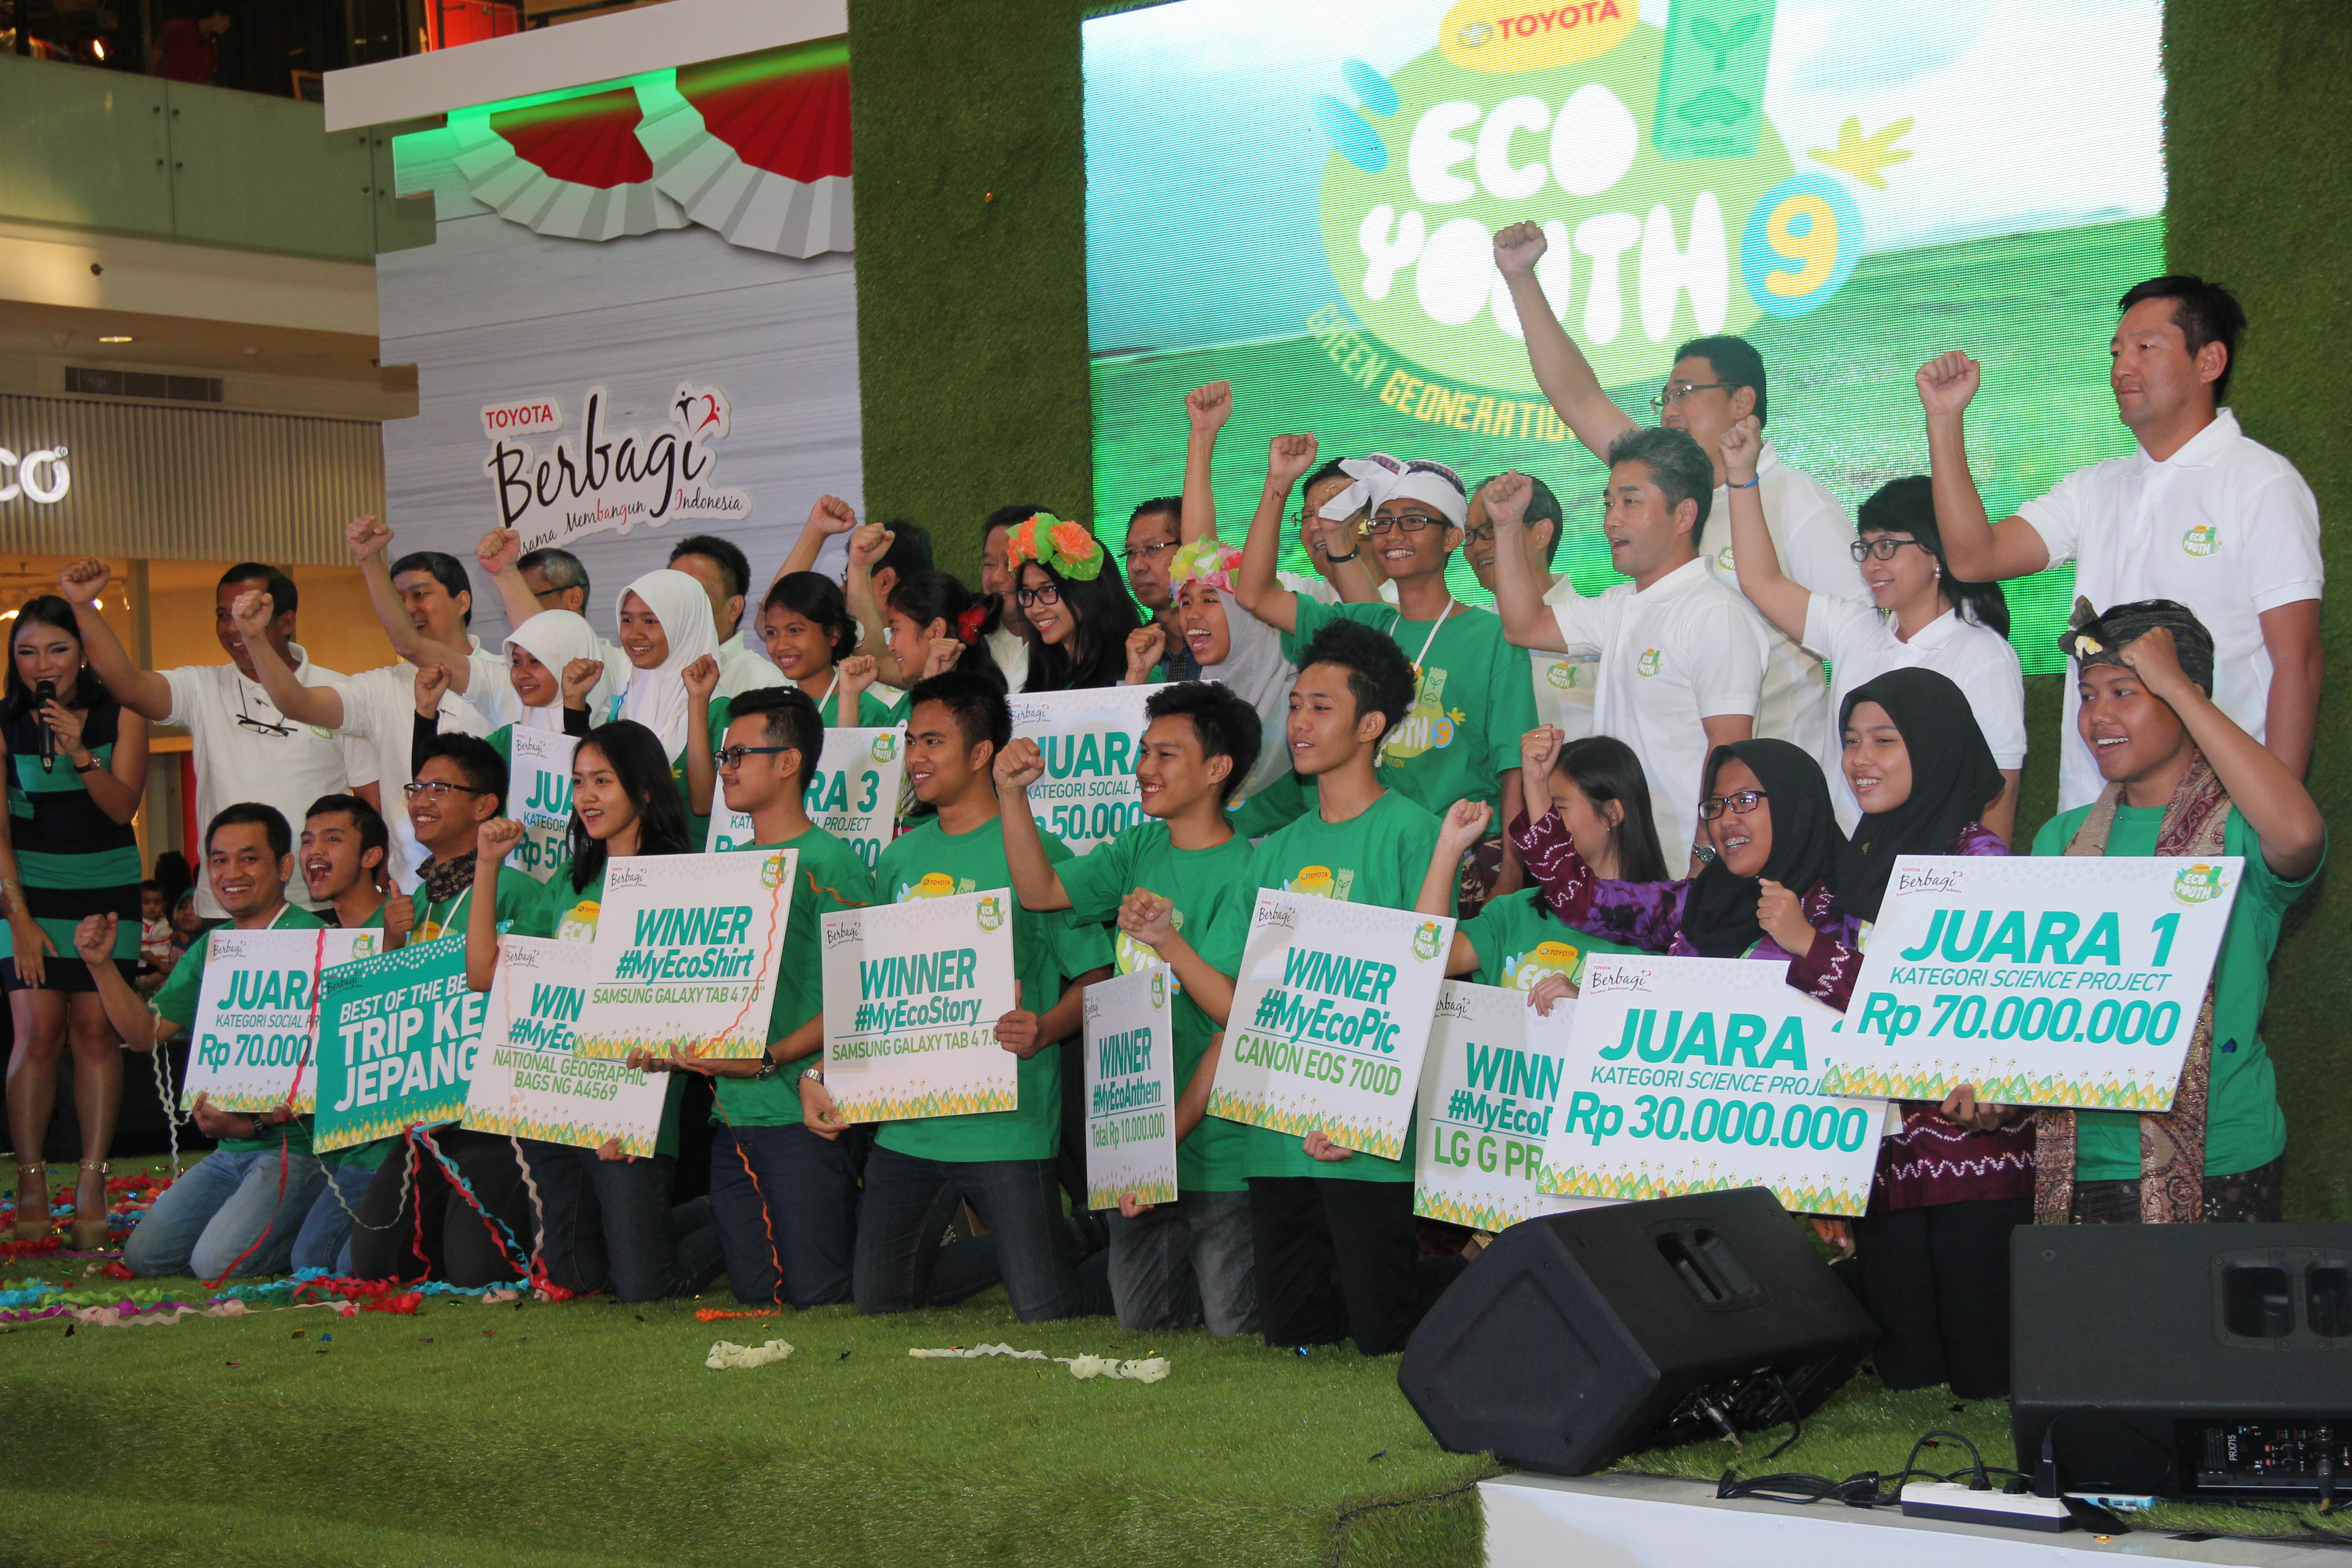 """Best of The Best"" Eco Youth Winner Join Environmental Training in Japan"